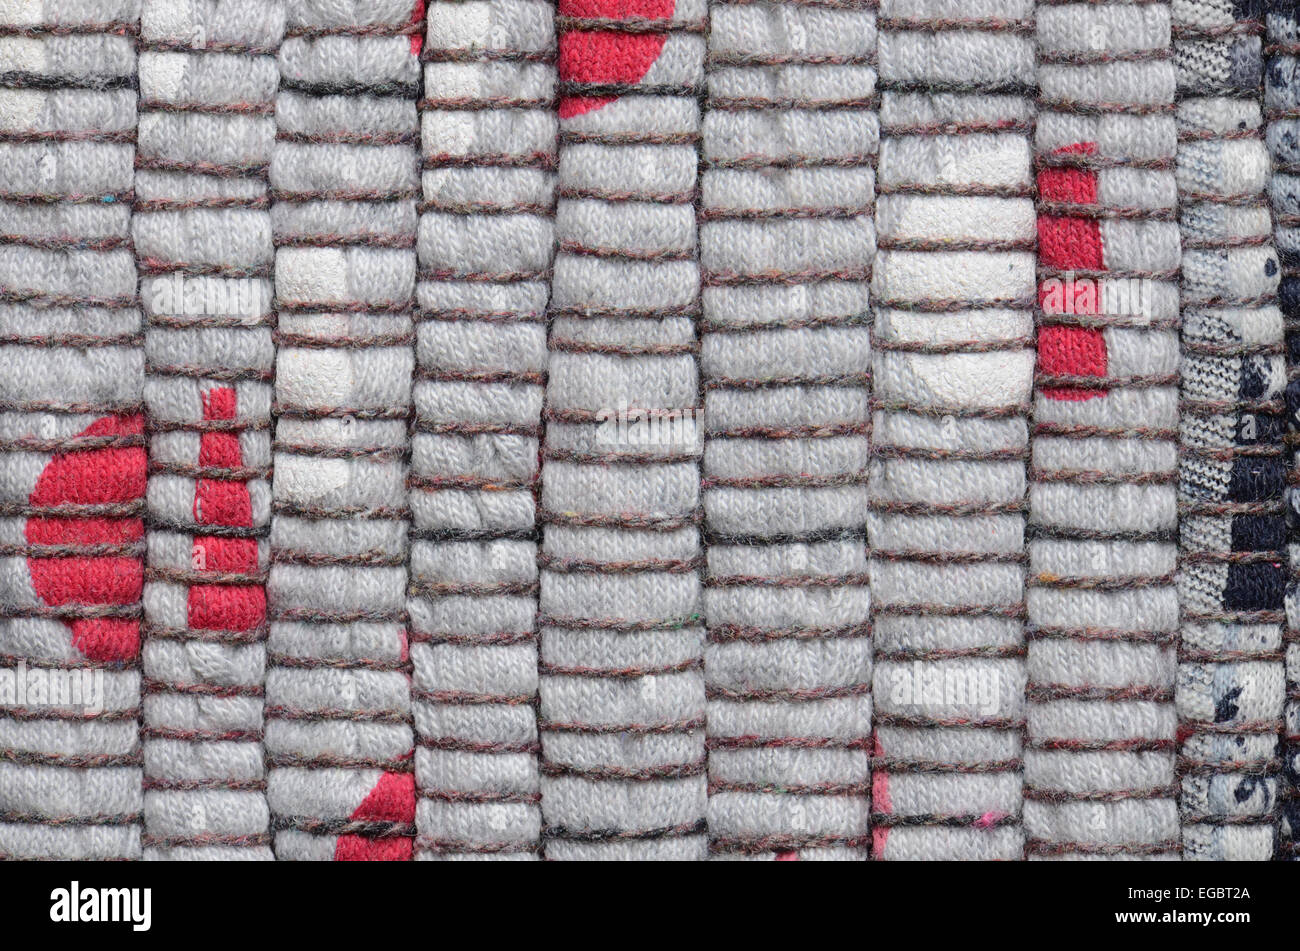 close up varicolored knitted carpet background - Stock Image